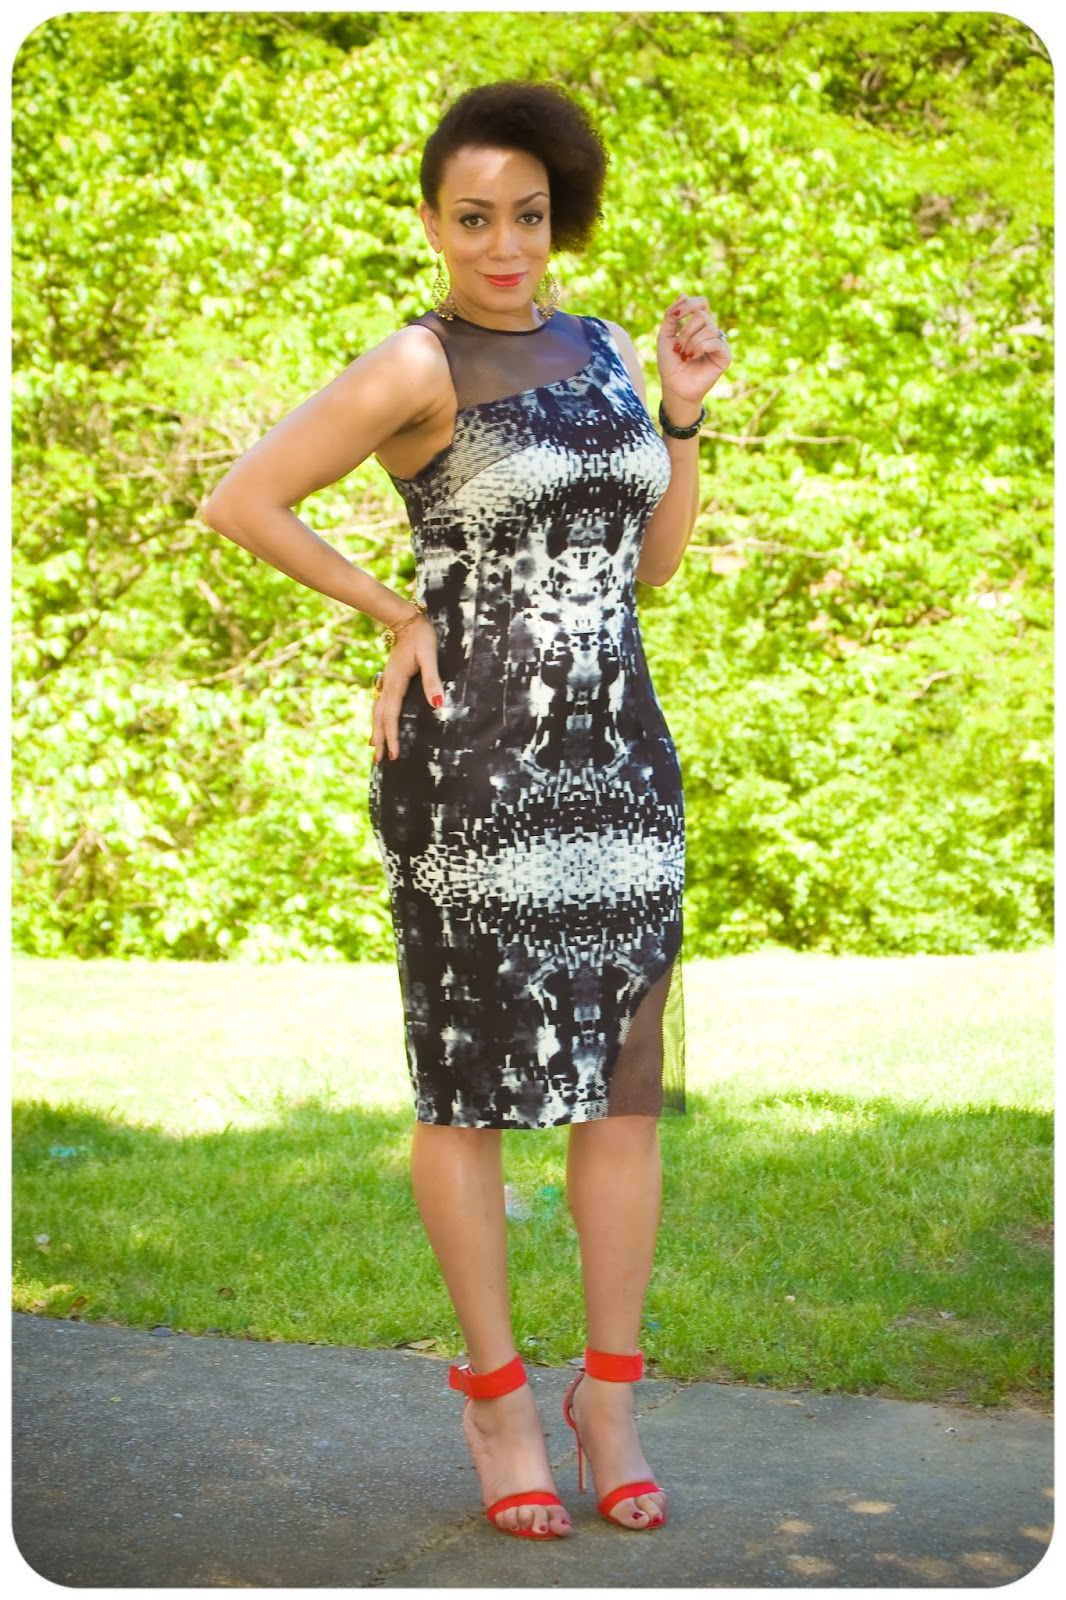 McCall's Pattern 7085 - Neoprene & Mesh Sheath Dress - Erica B.'s DIY Style!  All fabric from Mood Fabrics.com